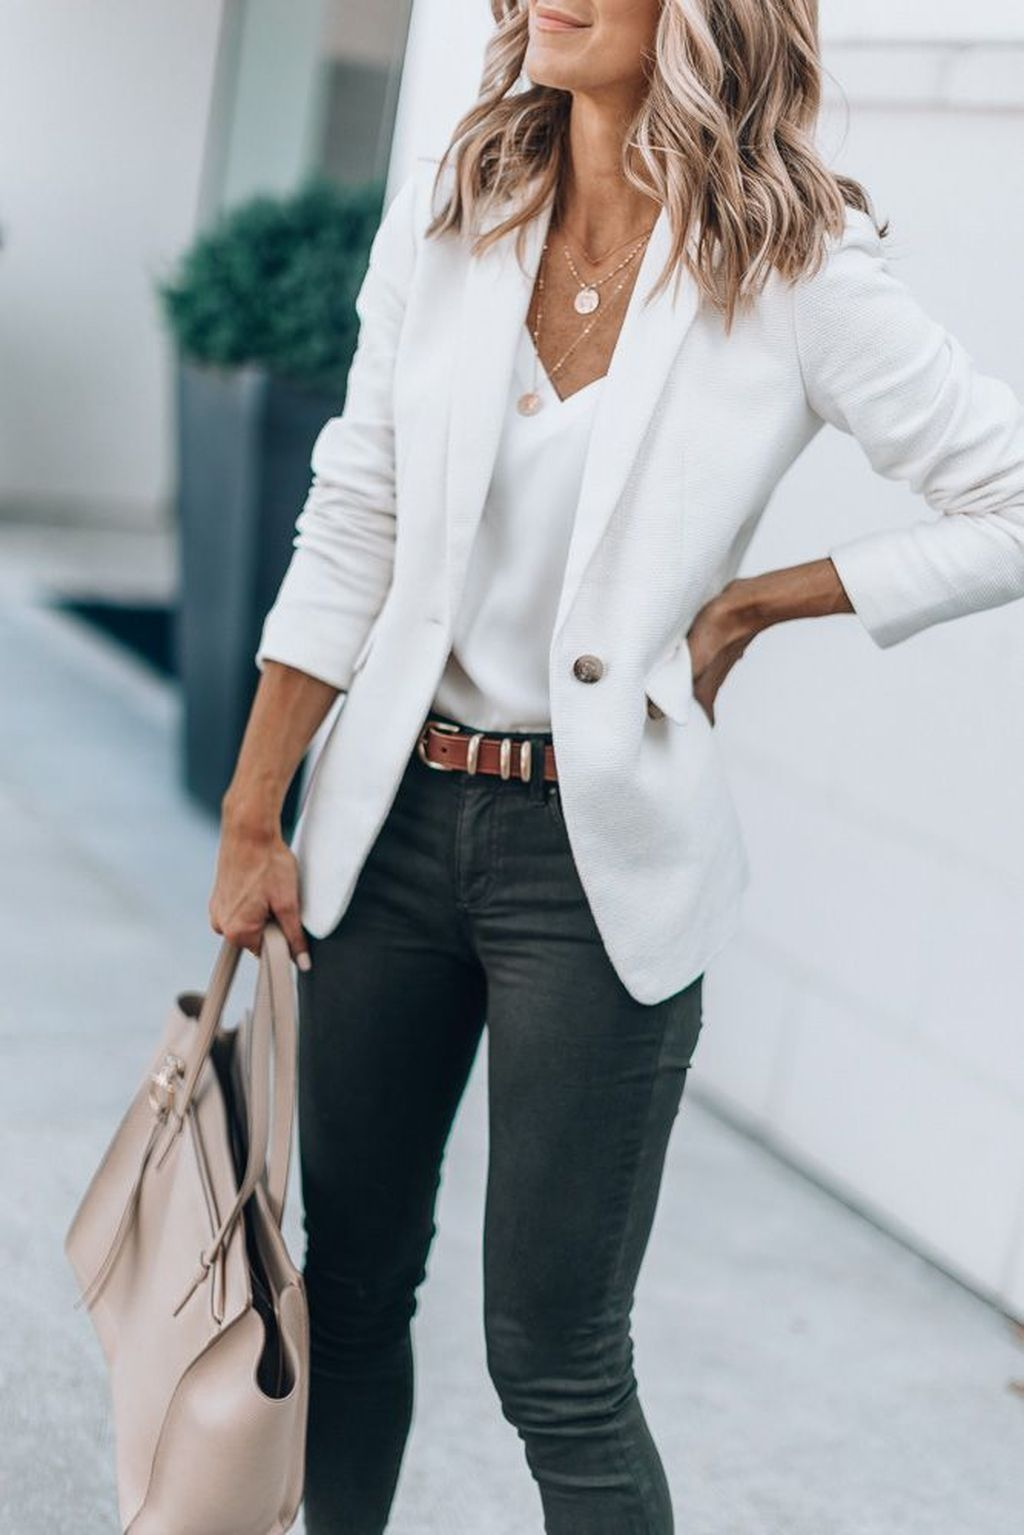 9b668f67480c1 Awesome 36 Incredible Women Work Outfits Ideas Trends Winter. More ...